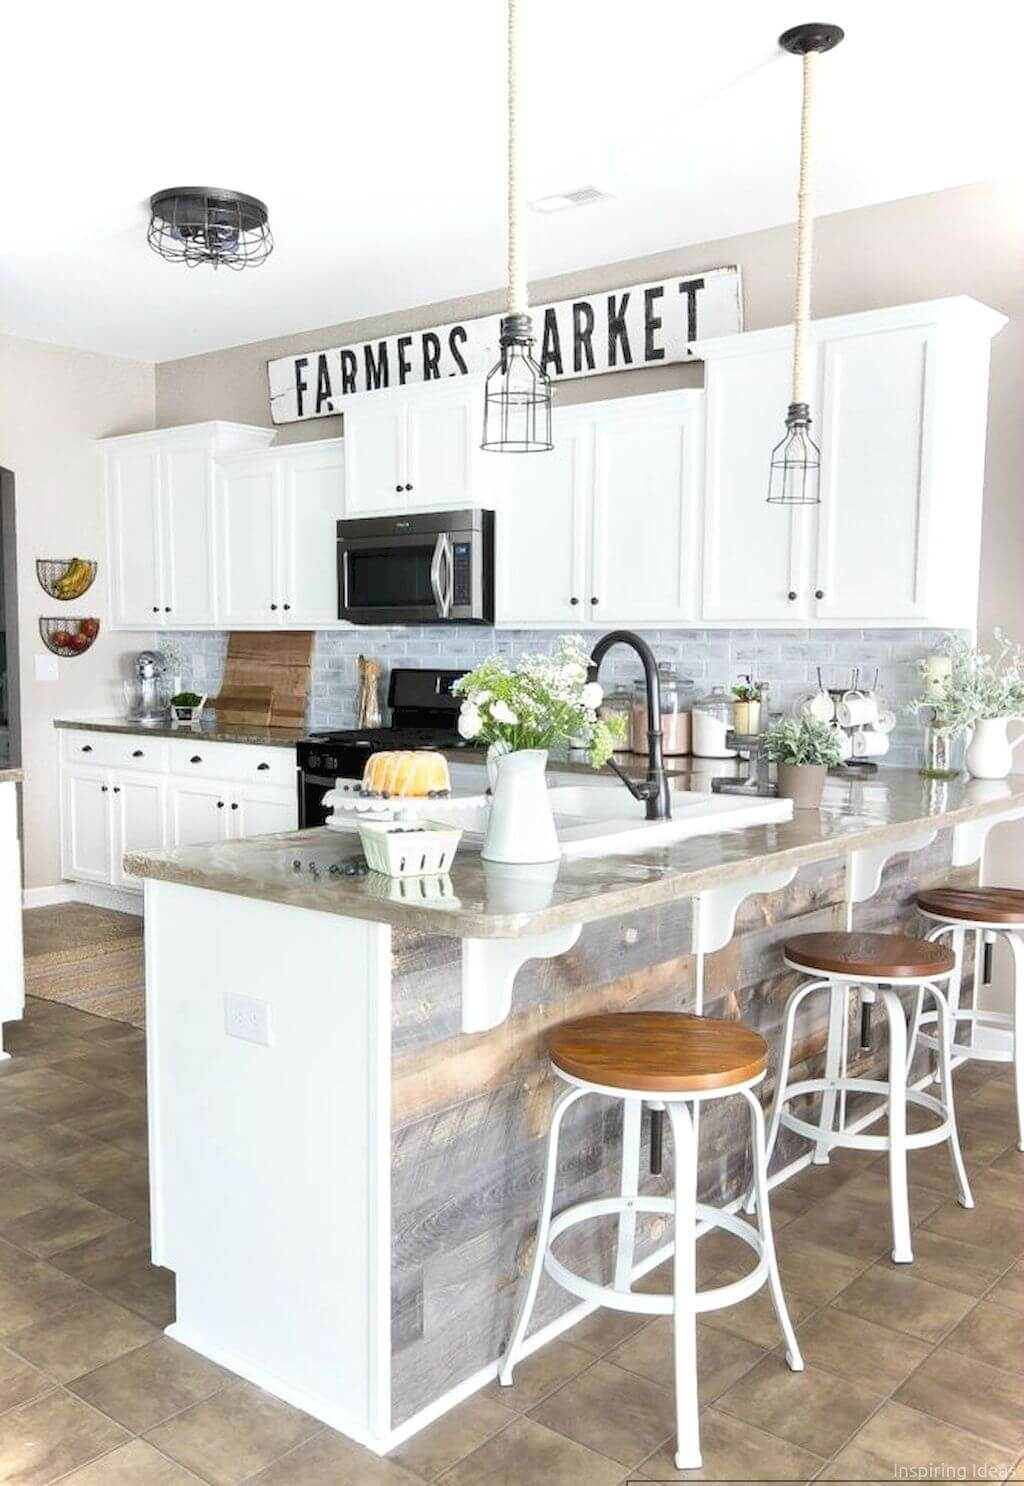 35 Best Farmhouse Kitchen Cabinet Ideas and Designs for 2018 Black And White Kitchen Cabinets Ideas on black and white traditional kitchens, kitchen paint color ideas, black and white kitchen decorating ideas,